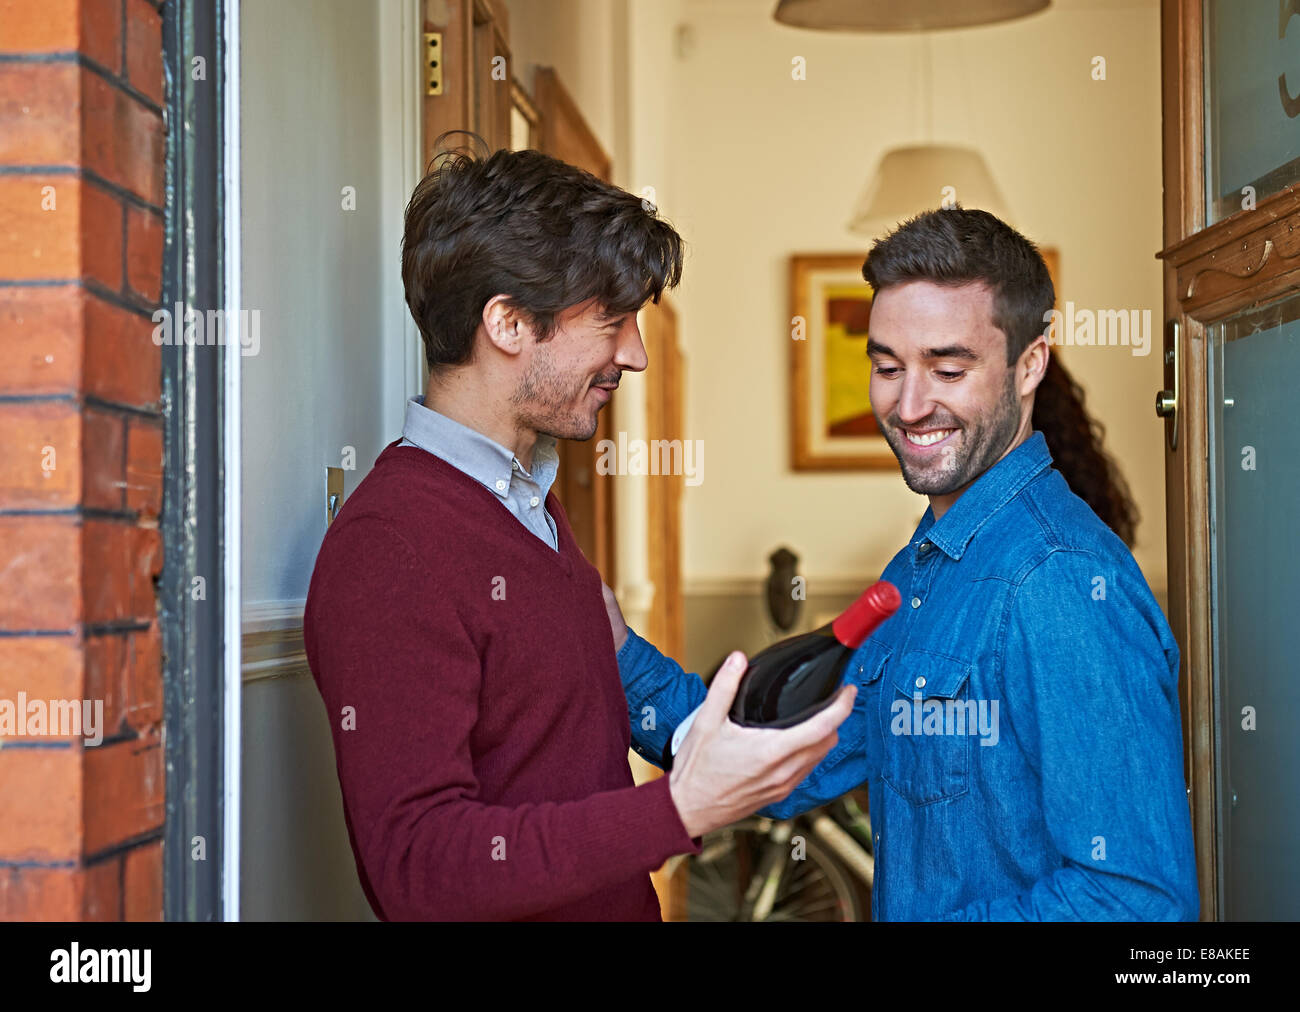 Men with bottle of wine smiling at front door Stock Photo